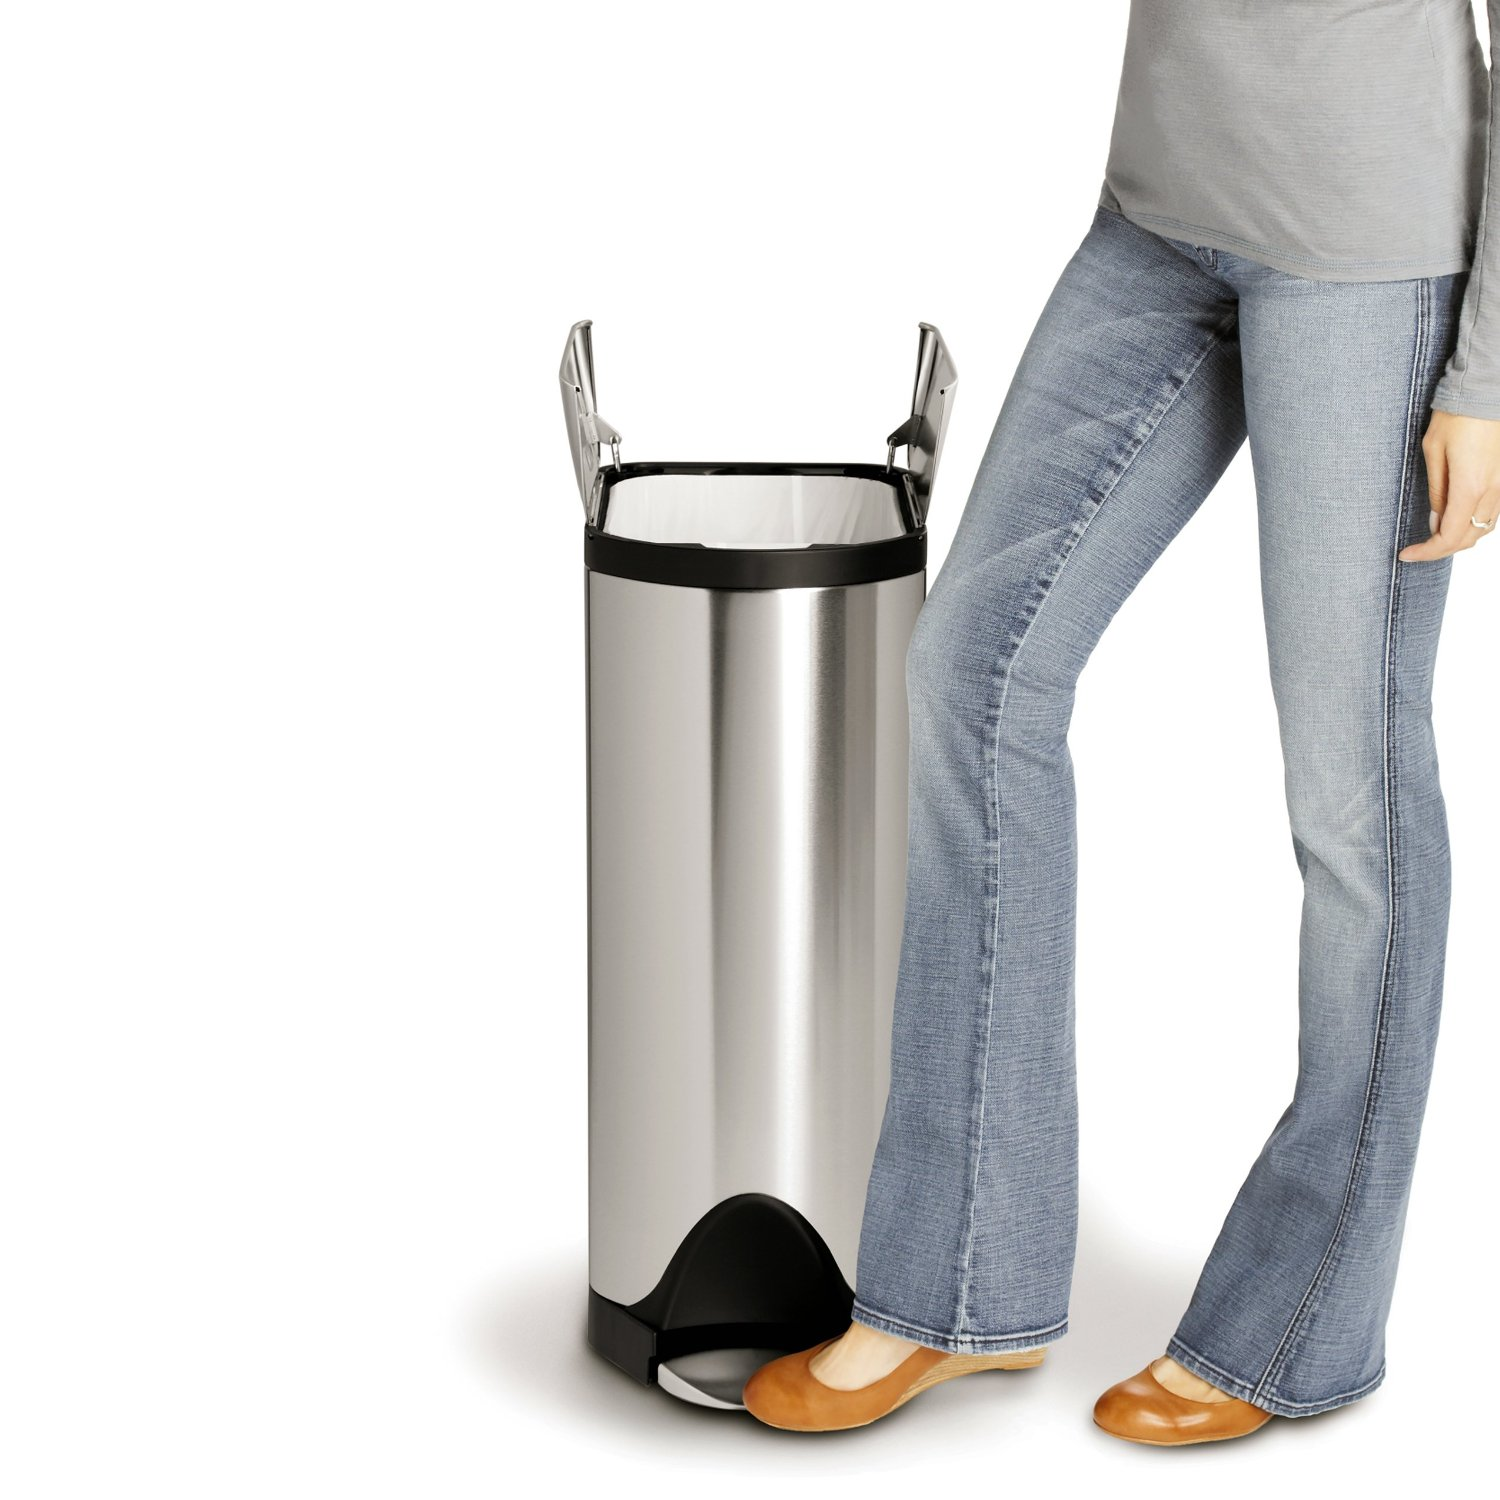 Simplehuman Butterfly Step Can for Kitchen, Office and More